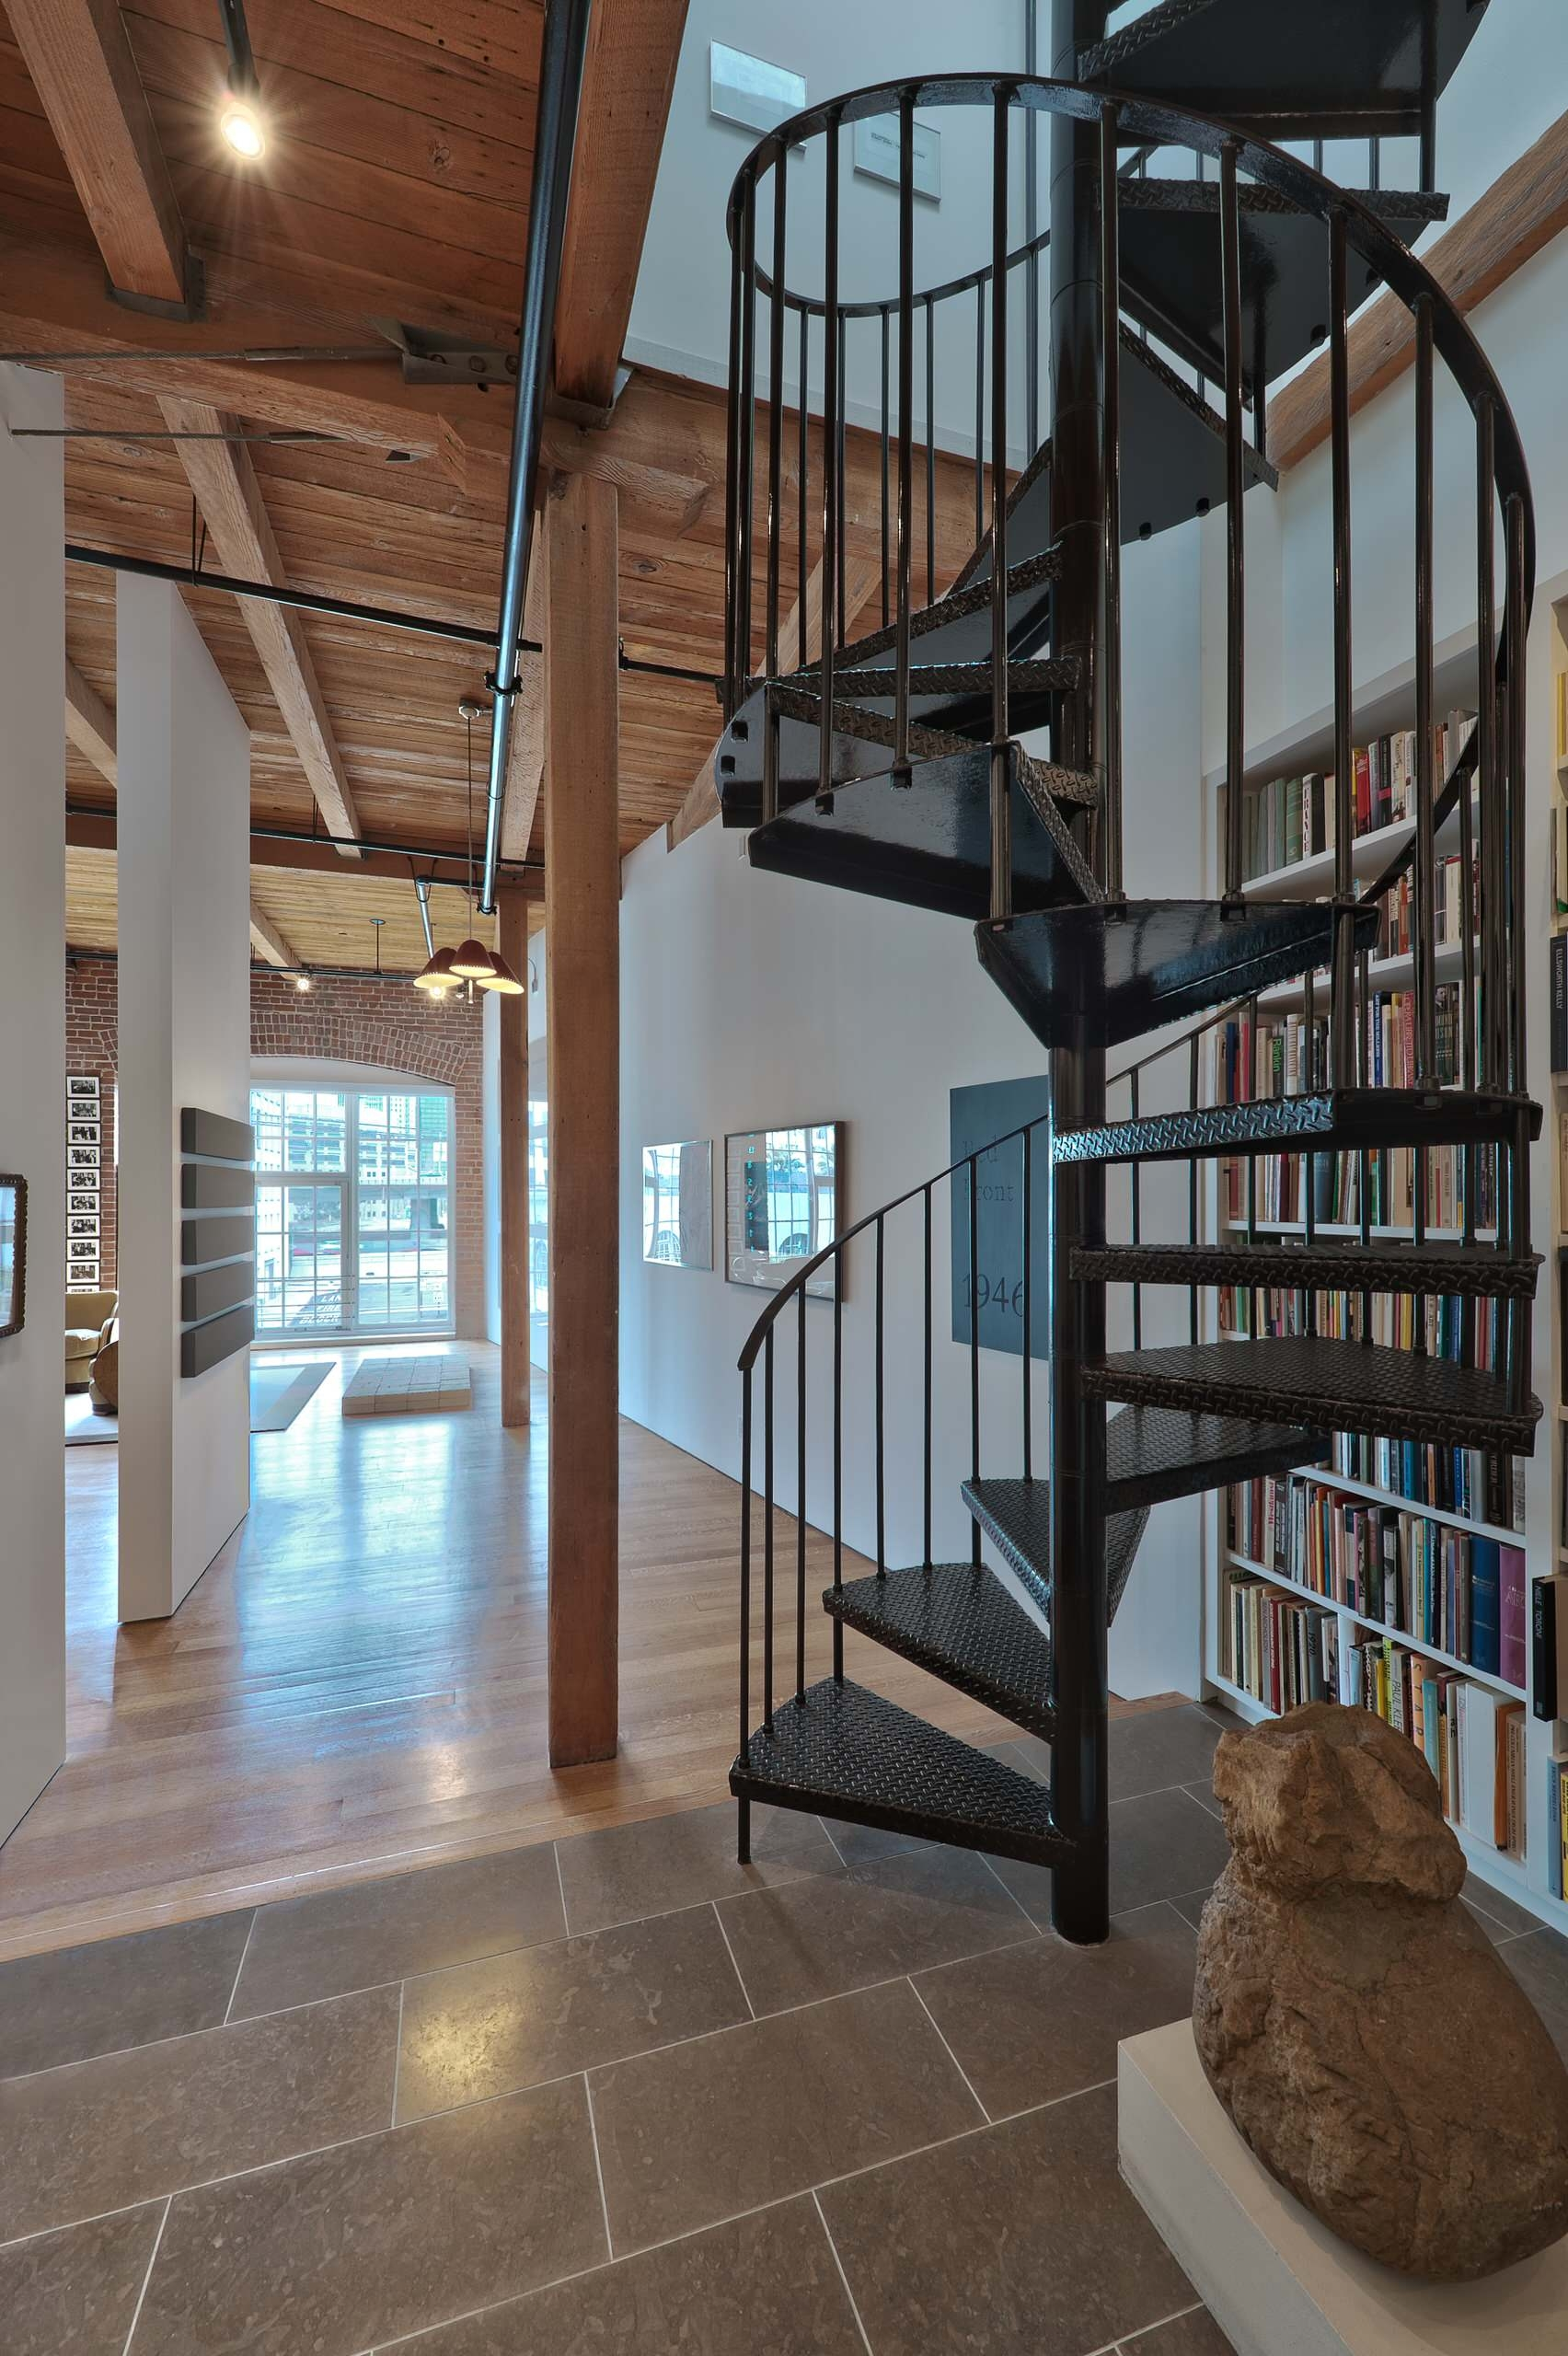 Wide Spiral Staircase Houzz | Wooden Spiral Staircase For Sale | Solid Wood | 36 Inch Diameter | Unique | Curved | Closed Riser